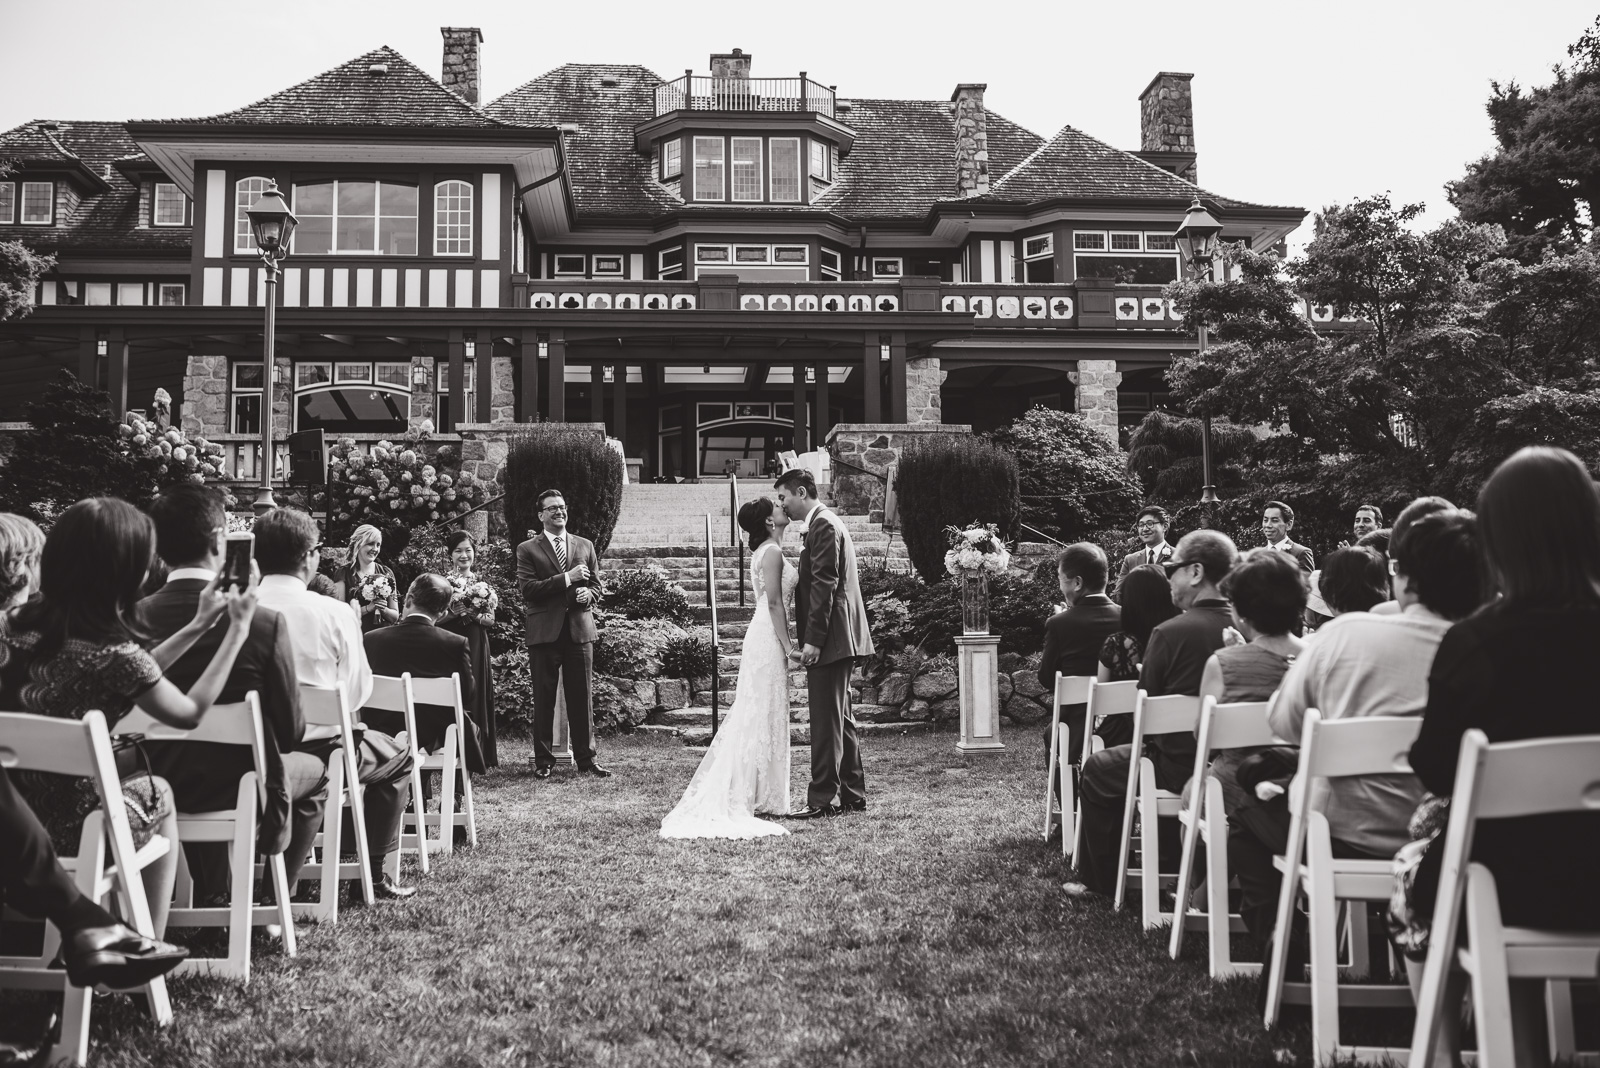 wedding first kiss at cecil green park house on ubc campus in vancouver - victoria wedding photographers